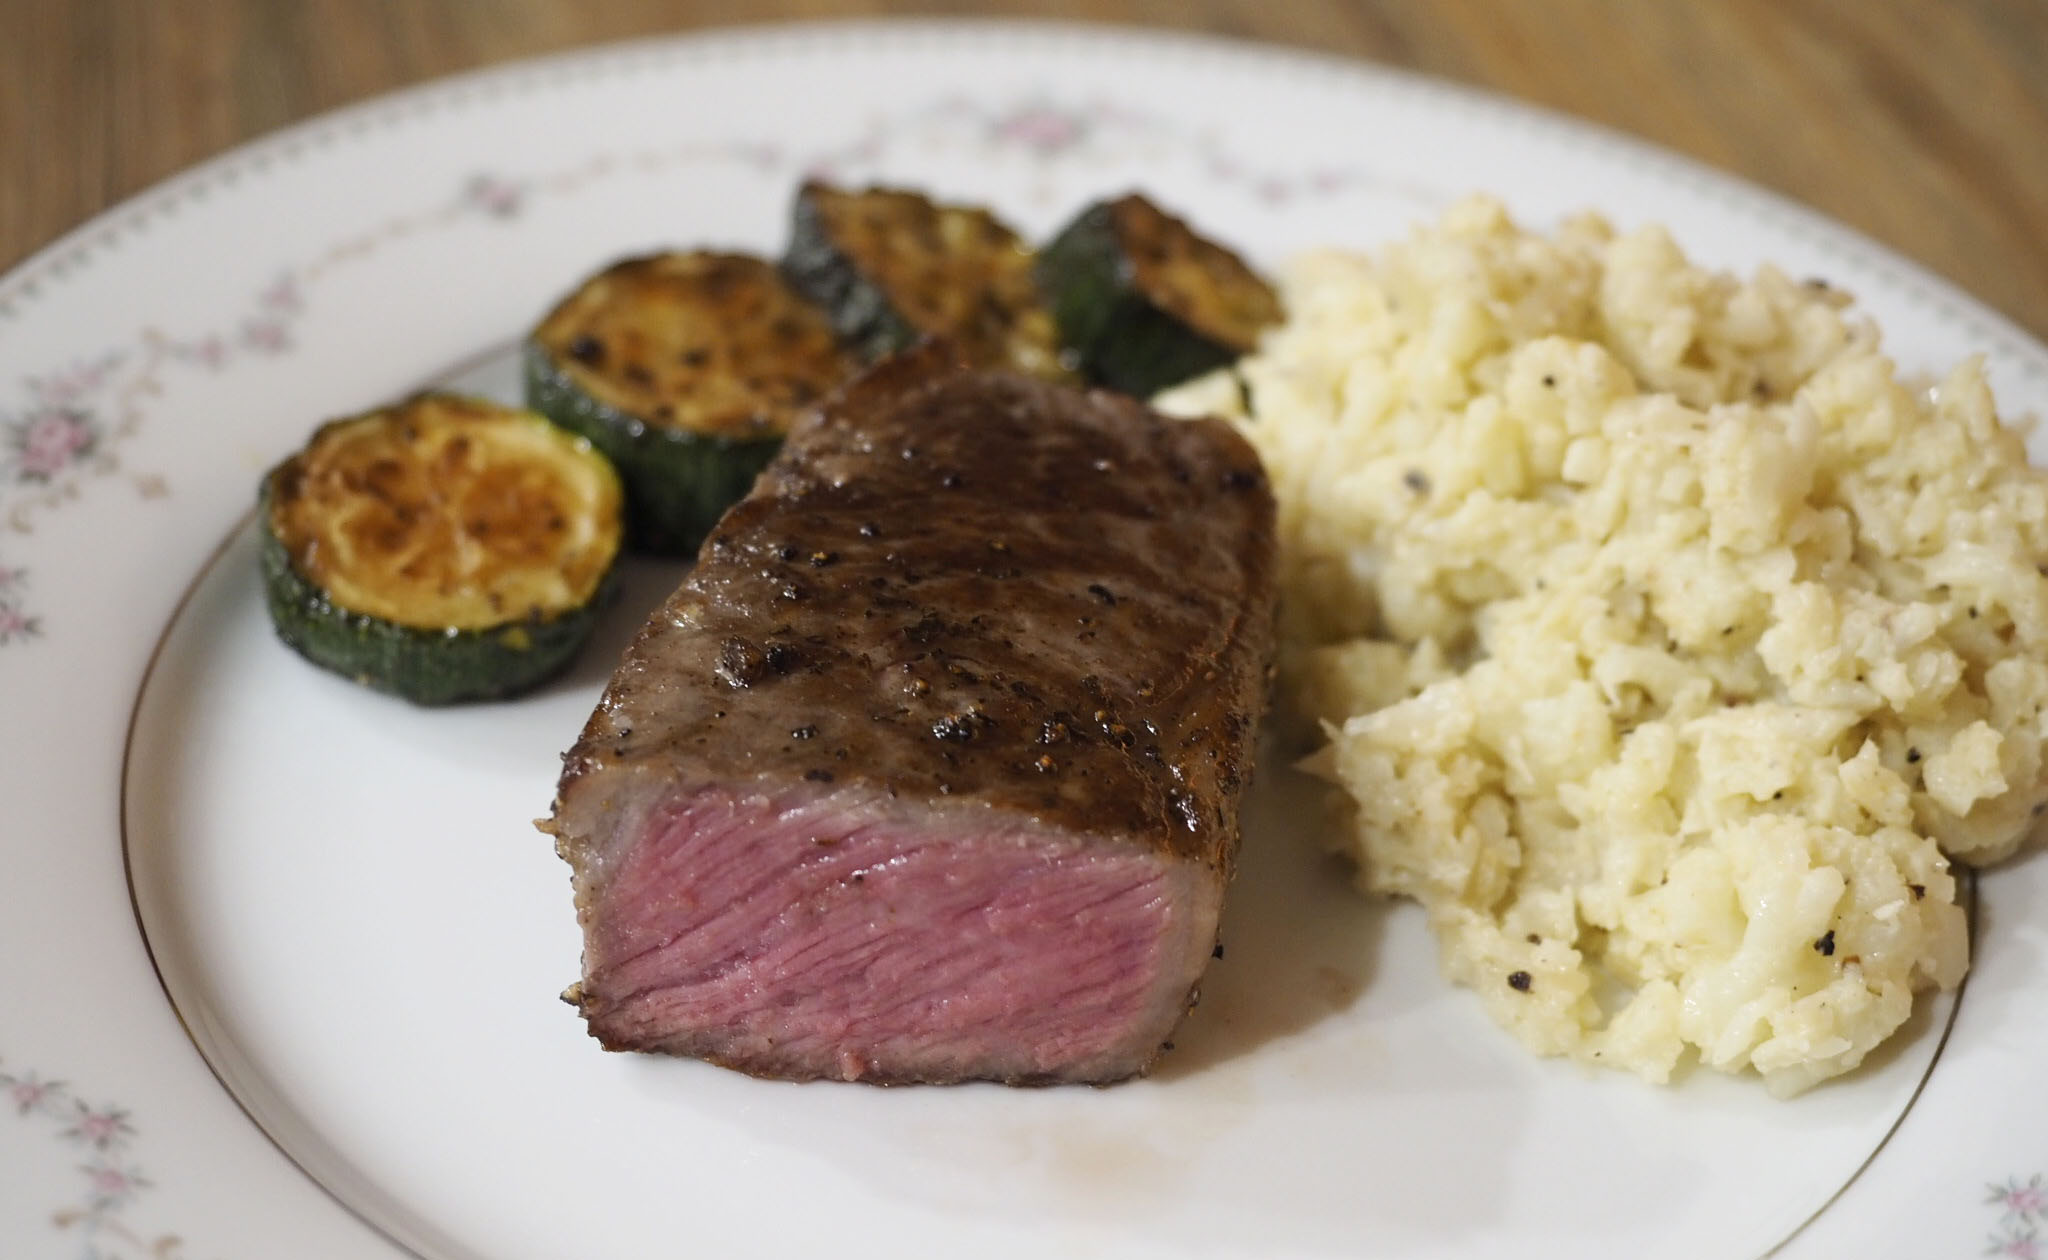 Secrets to the perfect steak: Cooking sous vide | The ...